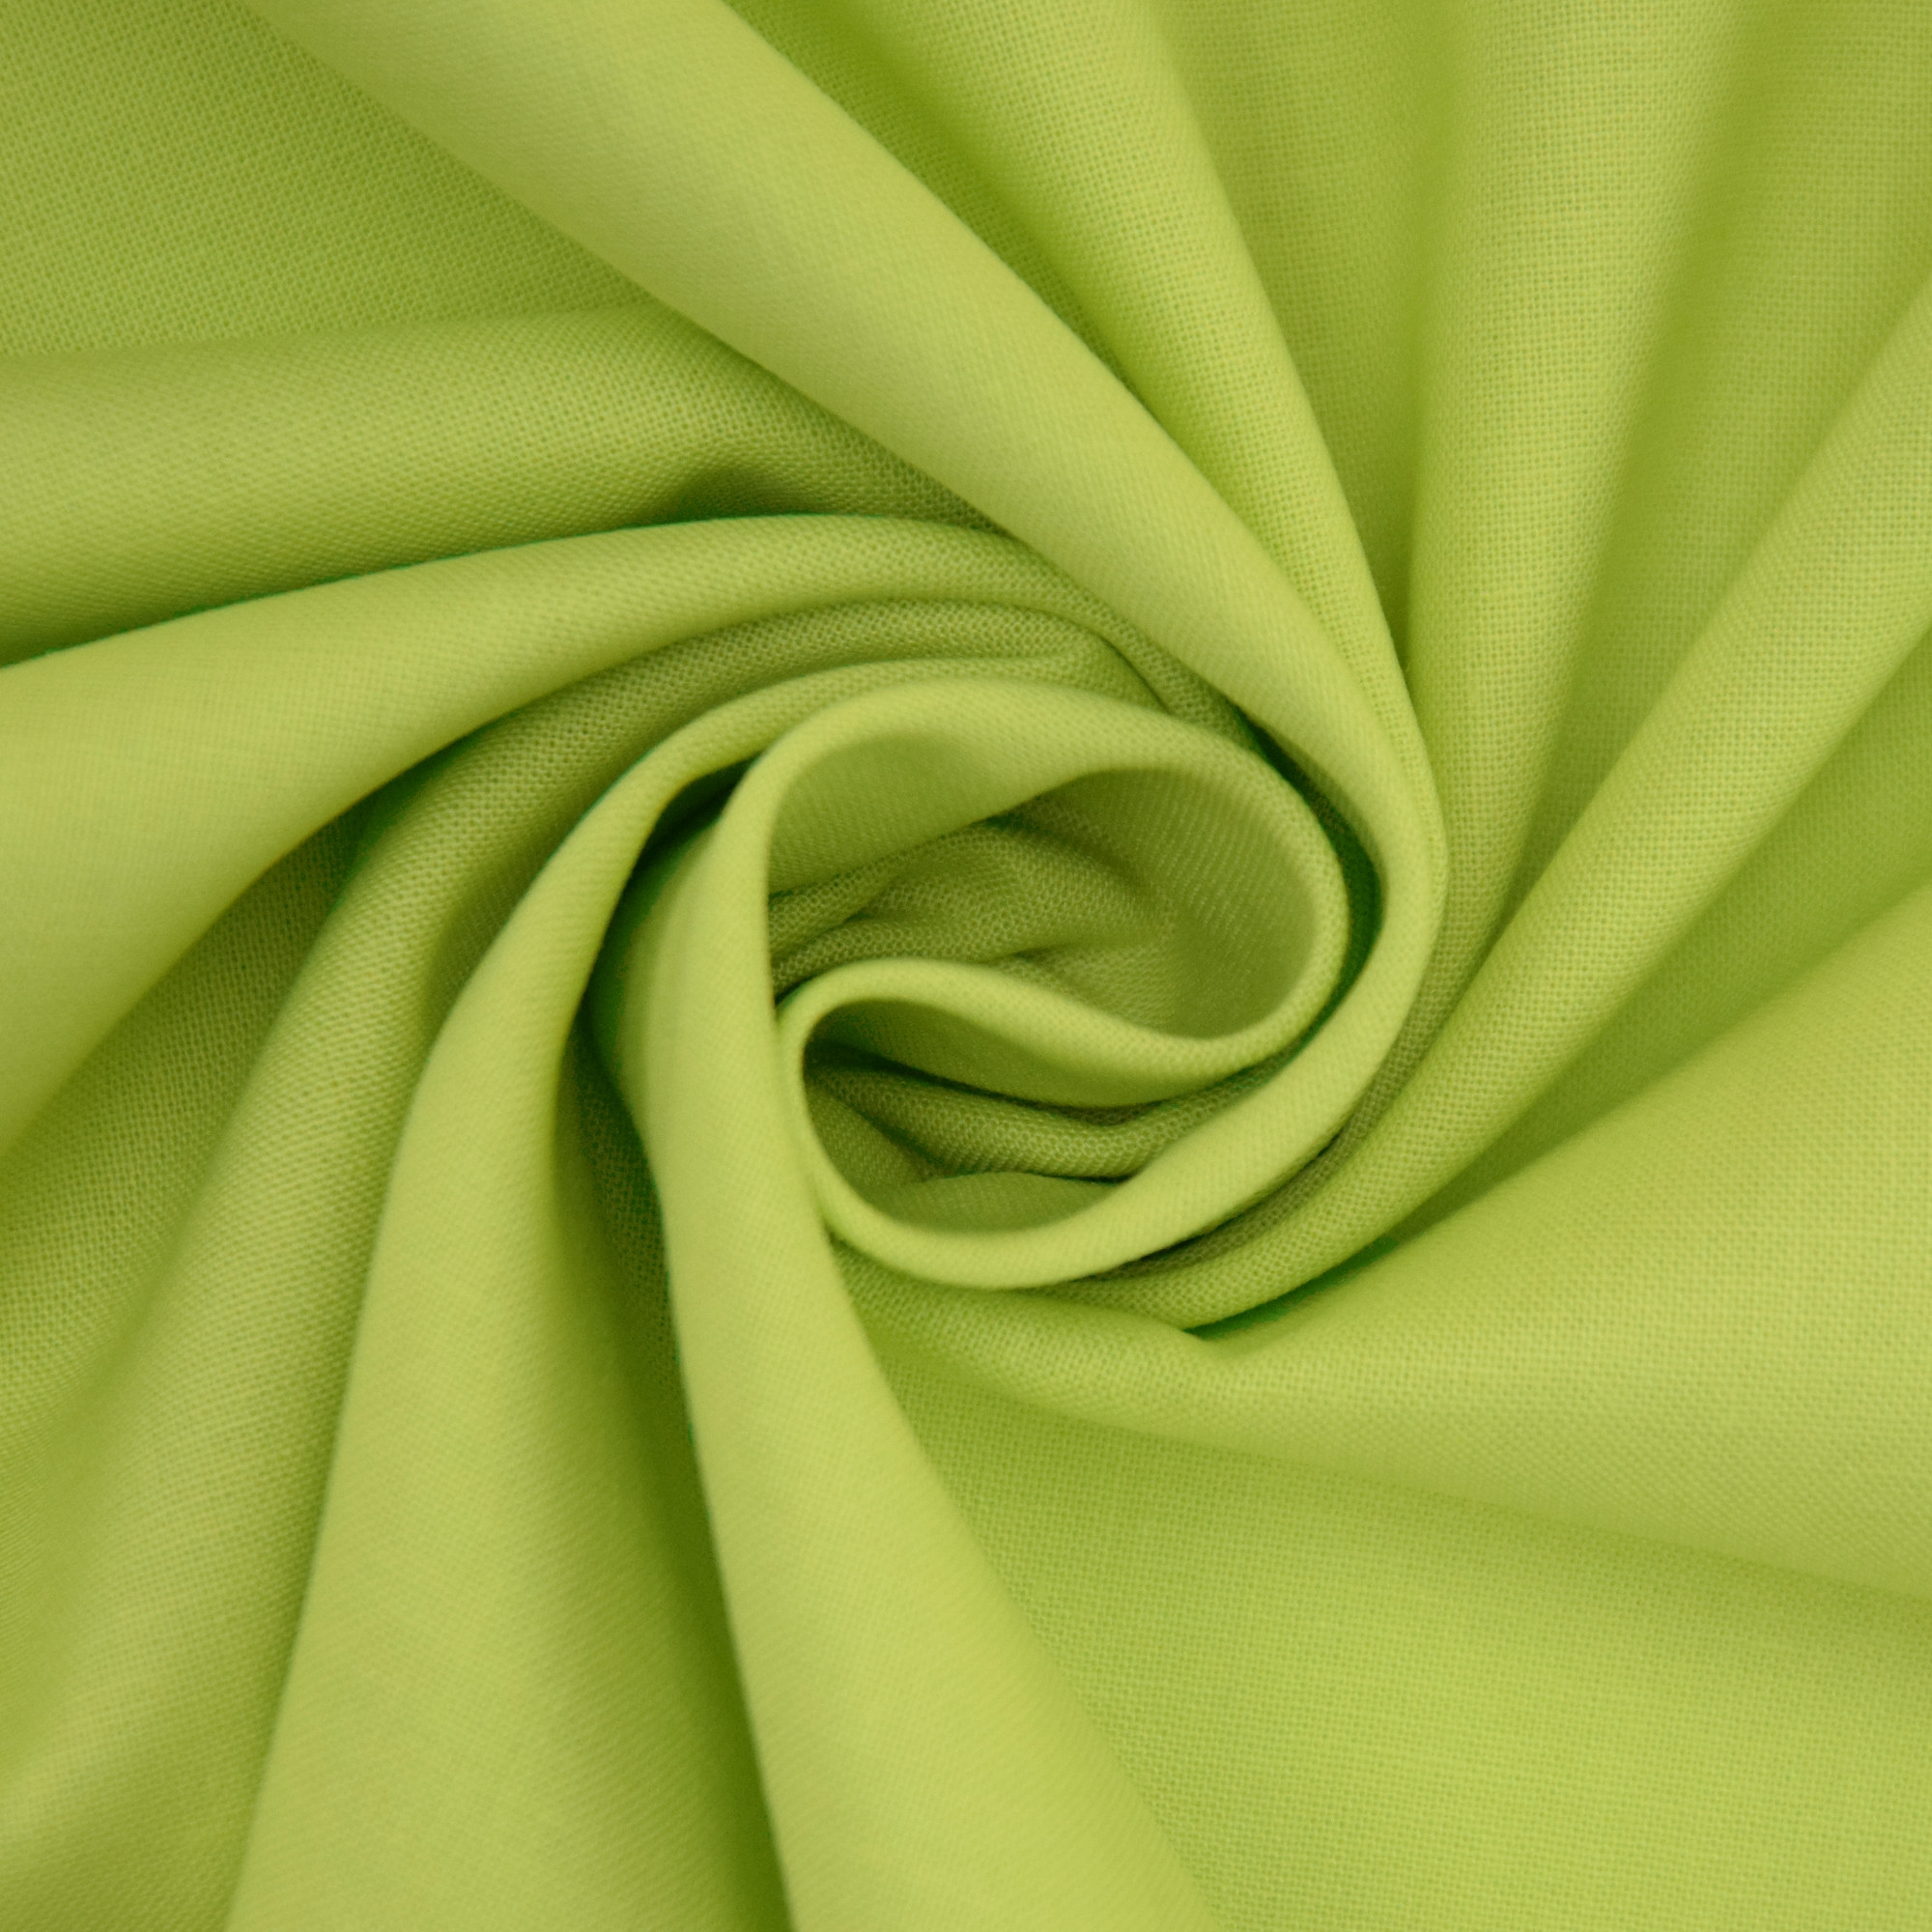 Cotton Cretonne green